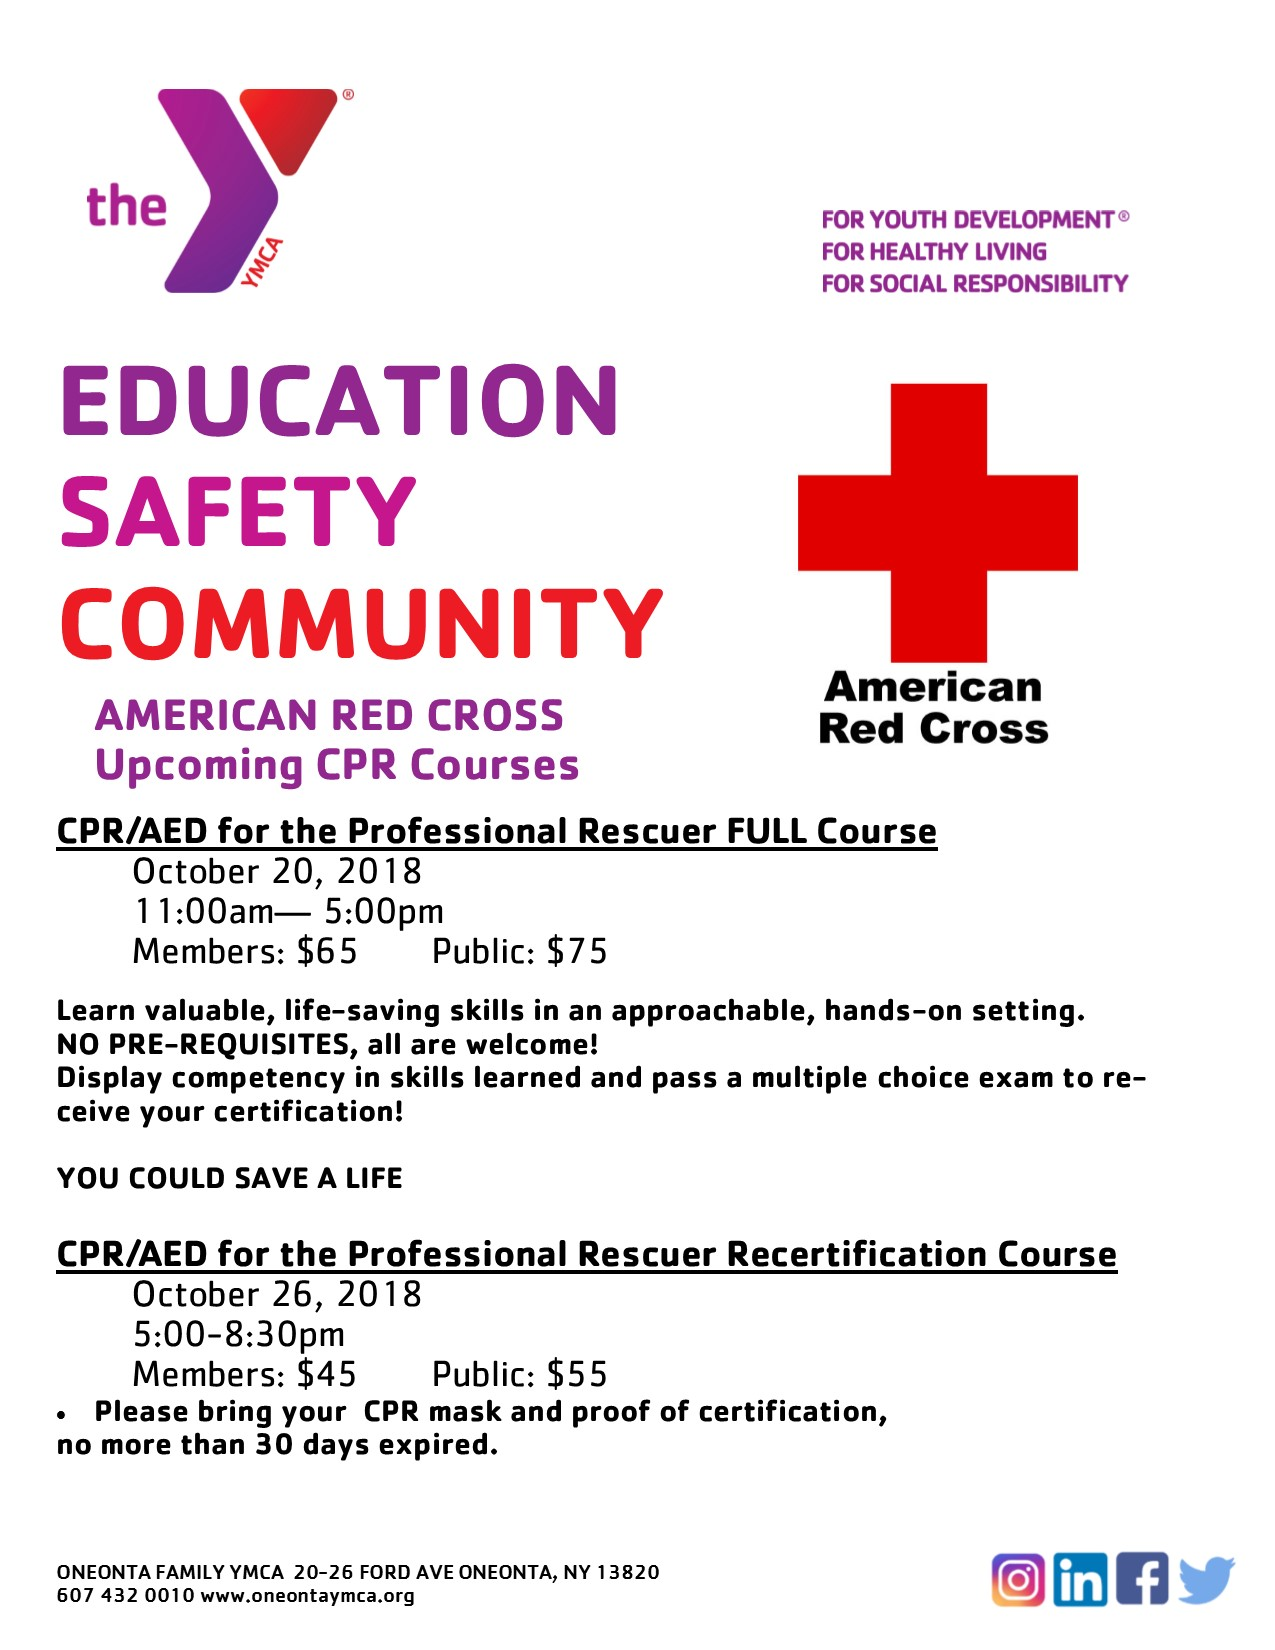 Oneonta Family Ymca Programs Aquatics Red Cross Course Info